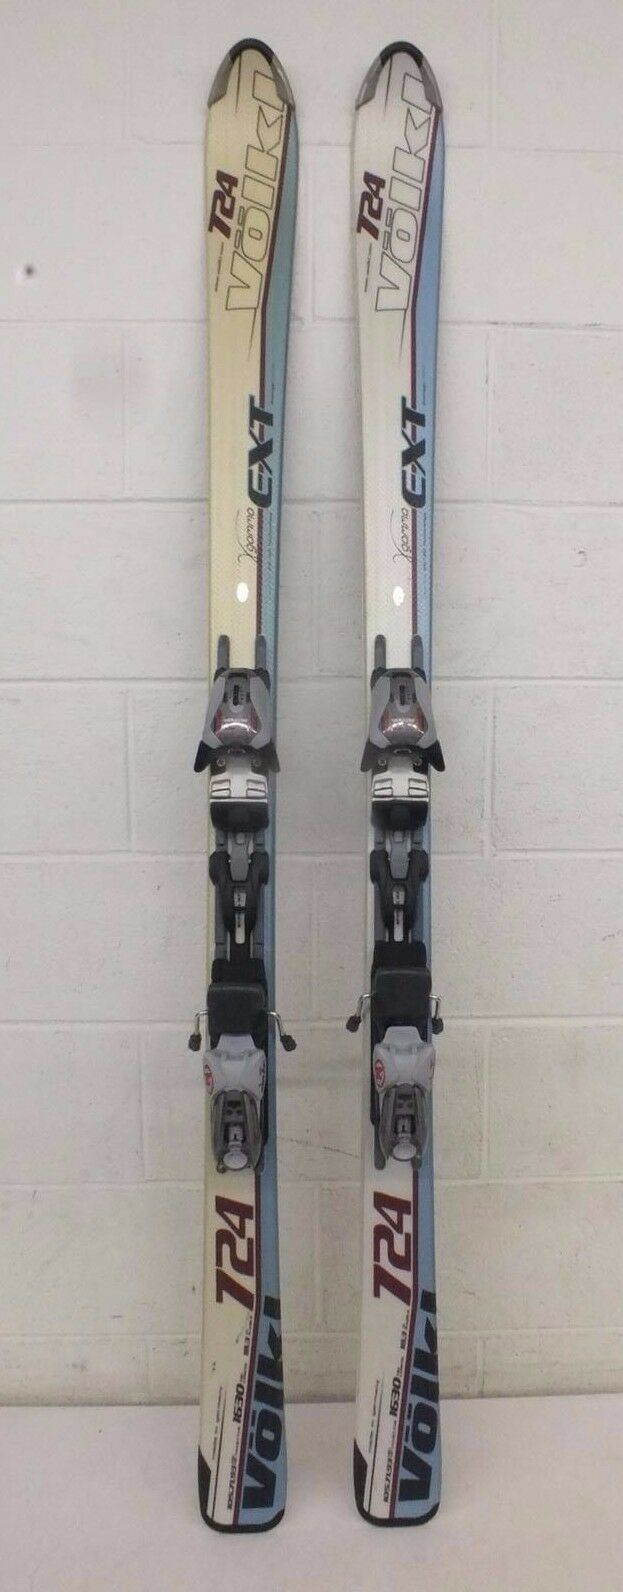 Volkl Gamma EXT 724 163cm 105-71-93 Downhill Skis w Marker  Motion LT Bindings  are doing discount activities